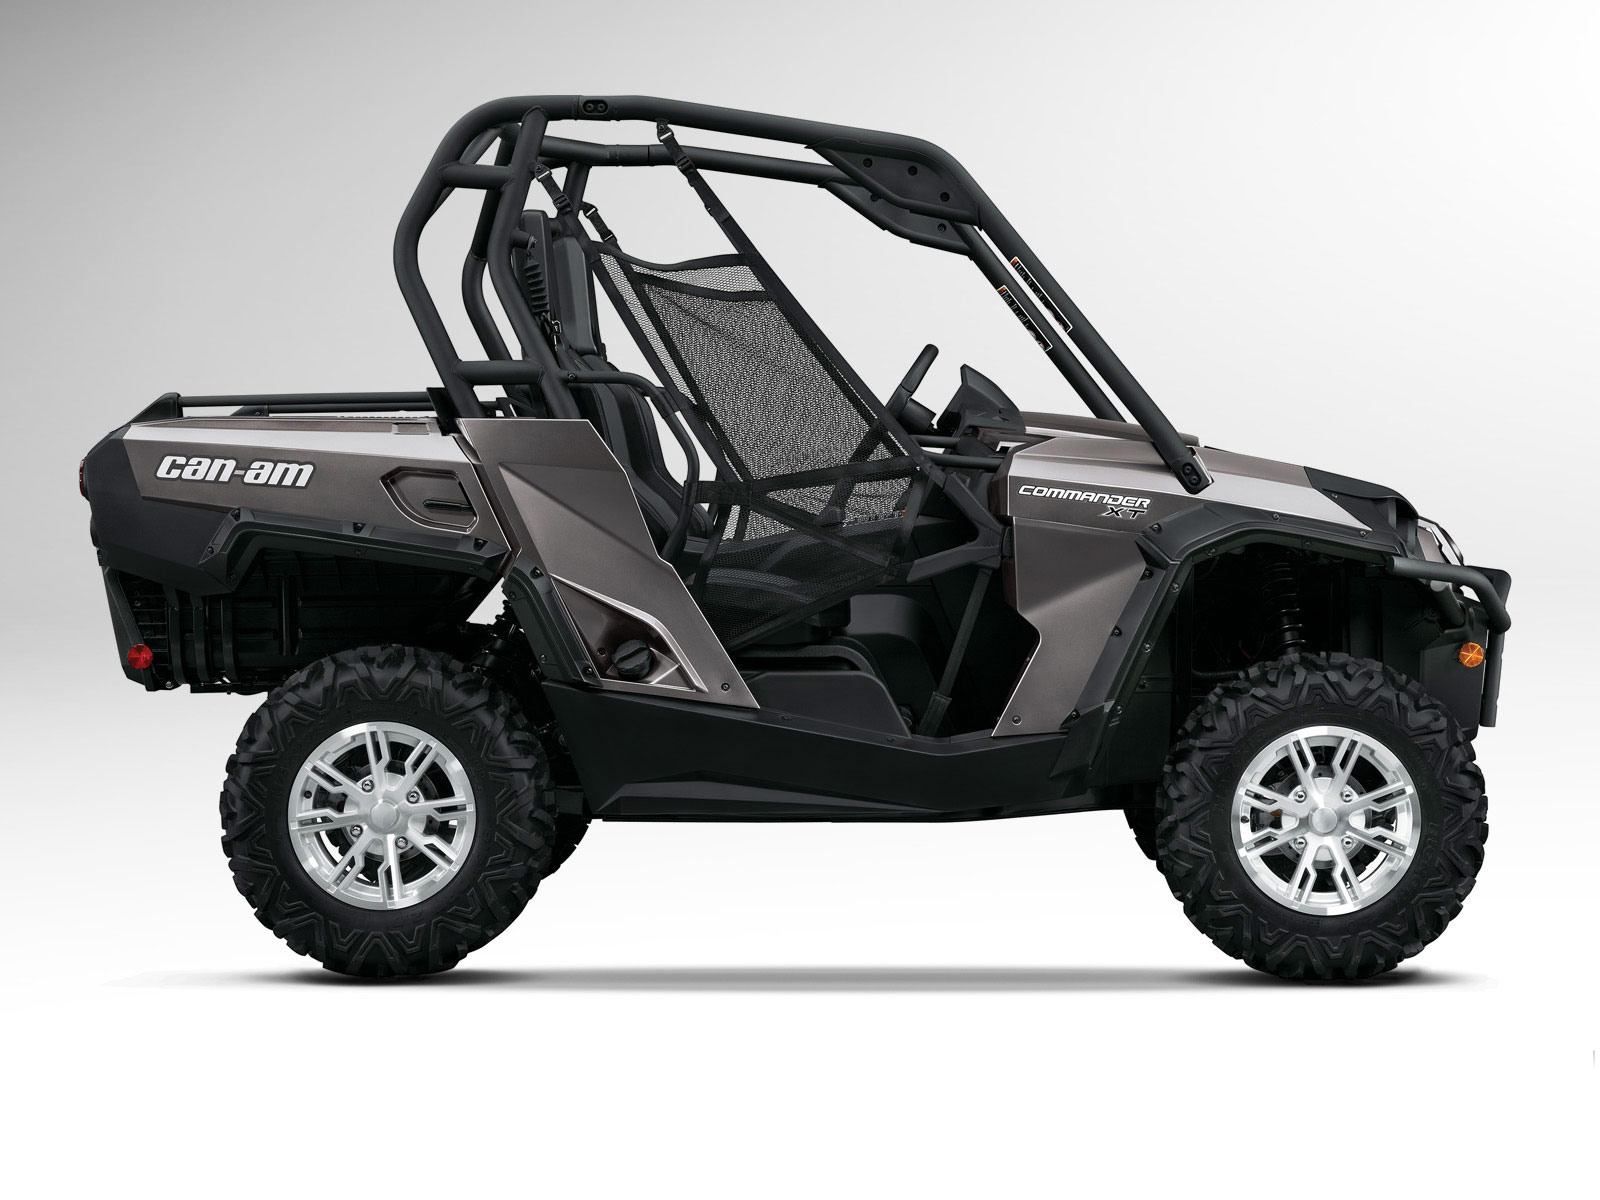 2012 Can-Am Commander 1000 XT ATV pictures 1